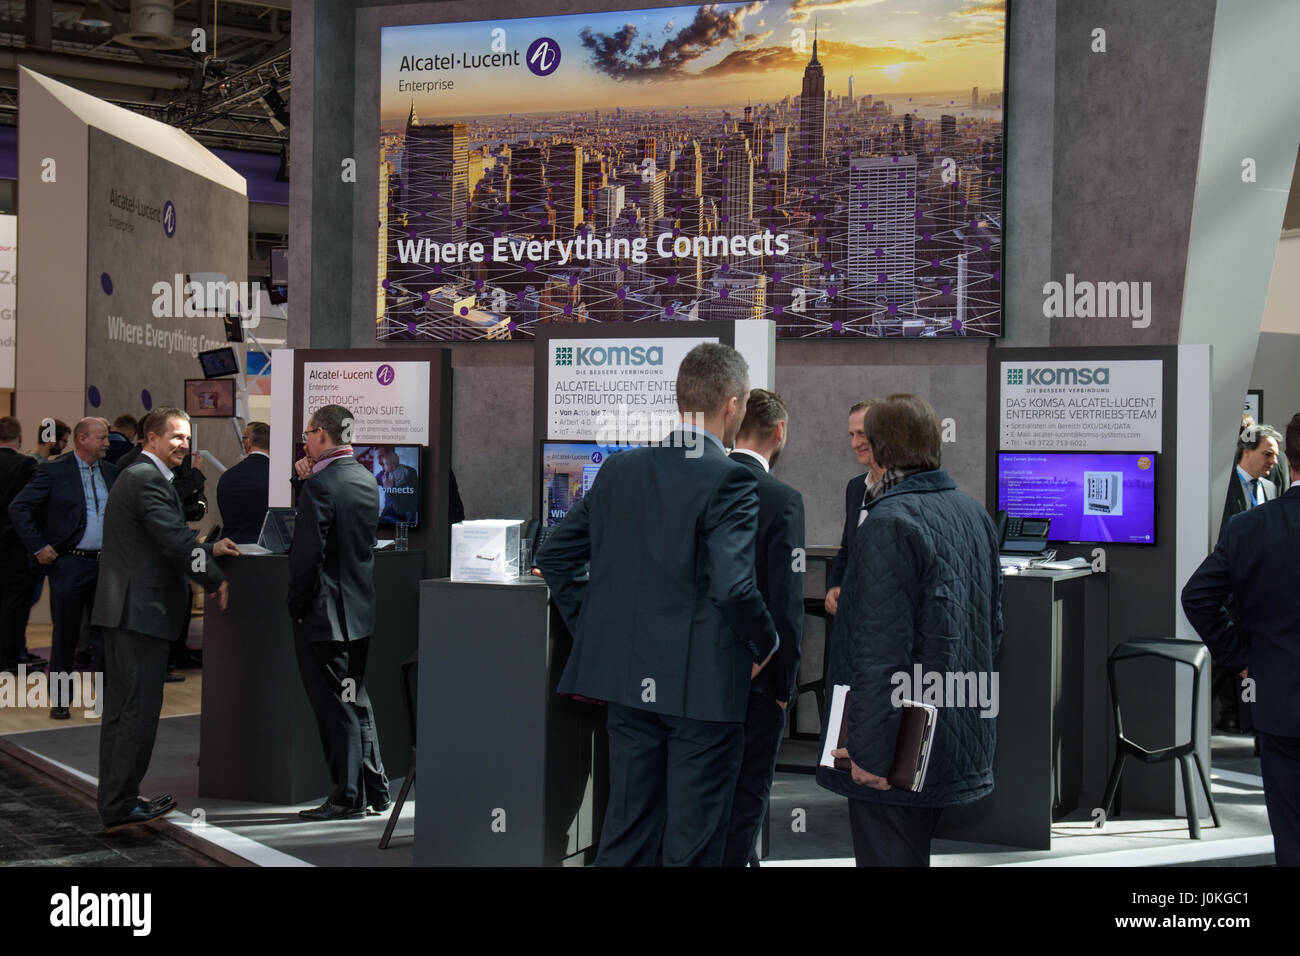 Hannover, Germany - March 22, 2017: Booth of the company Alcatel Lucent with business men at CeBIT 2017. CeBIT is - Stock Image